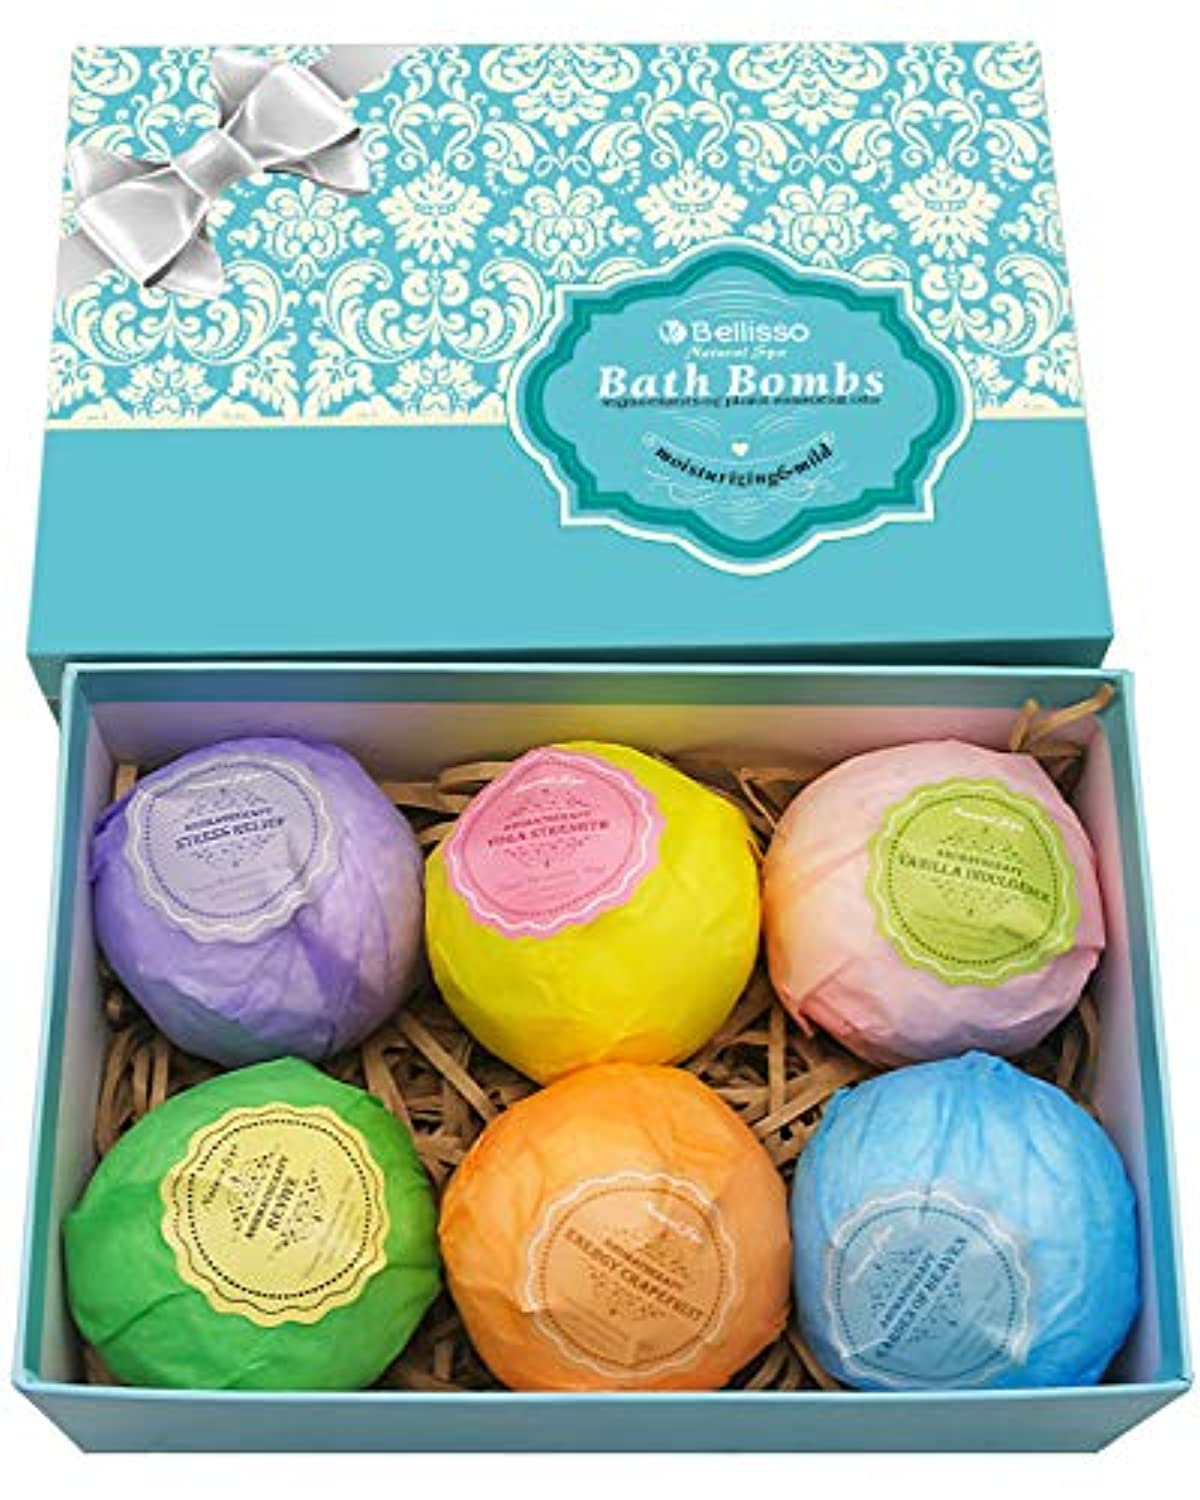 Classier: Buy BELLISSO Bath Bombs Ultra Lux Gift Set - 6 XXL All Natural Fizzies with Dead Sea Salt Cocoa and Shea Essential Oils - Best Gift Idea for Birthday, Mom, Girl, Him, Kids - Add to Bath Basket